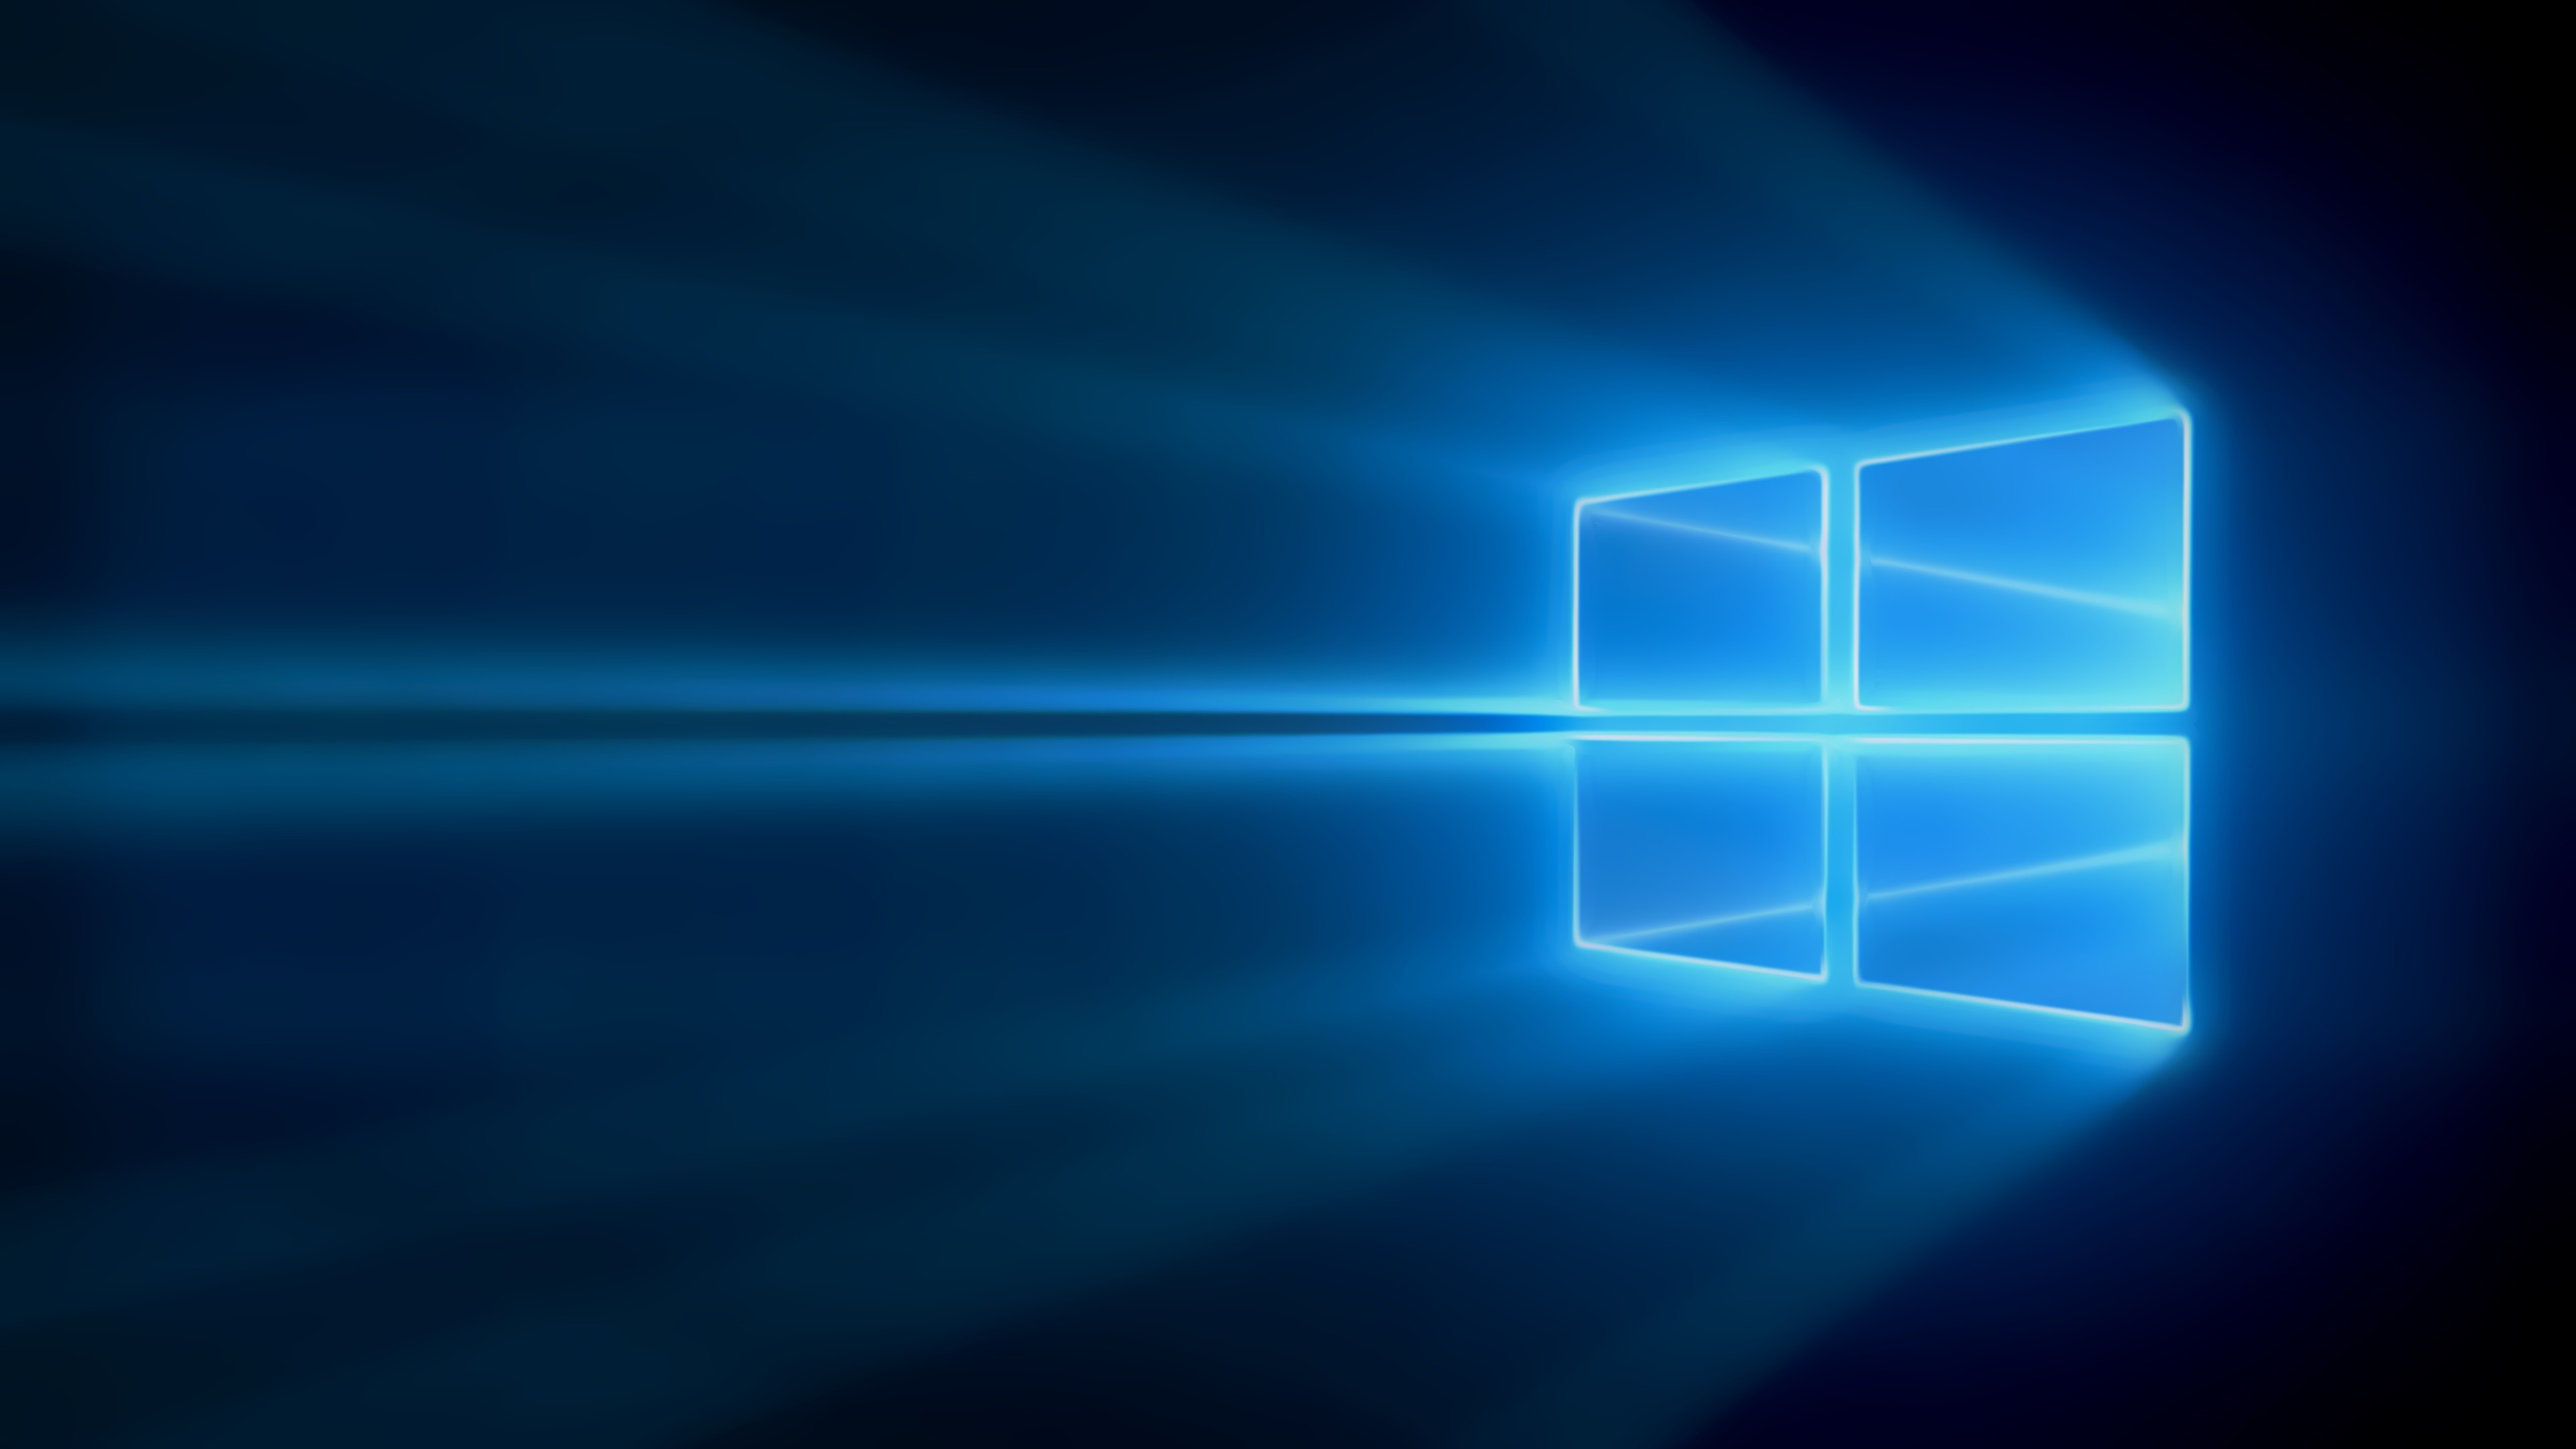 Adobe After Effects Master Creates Downloadable Version of Windows …